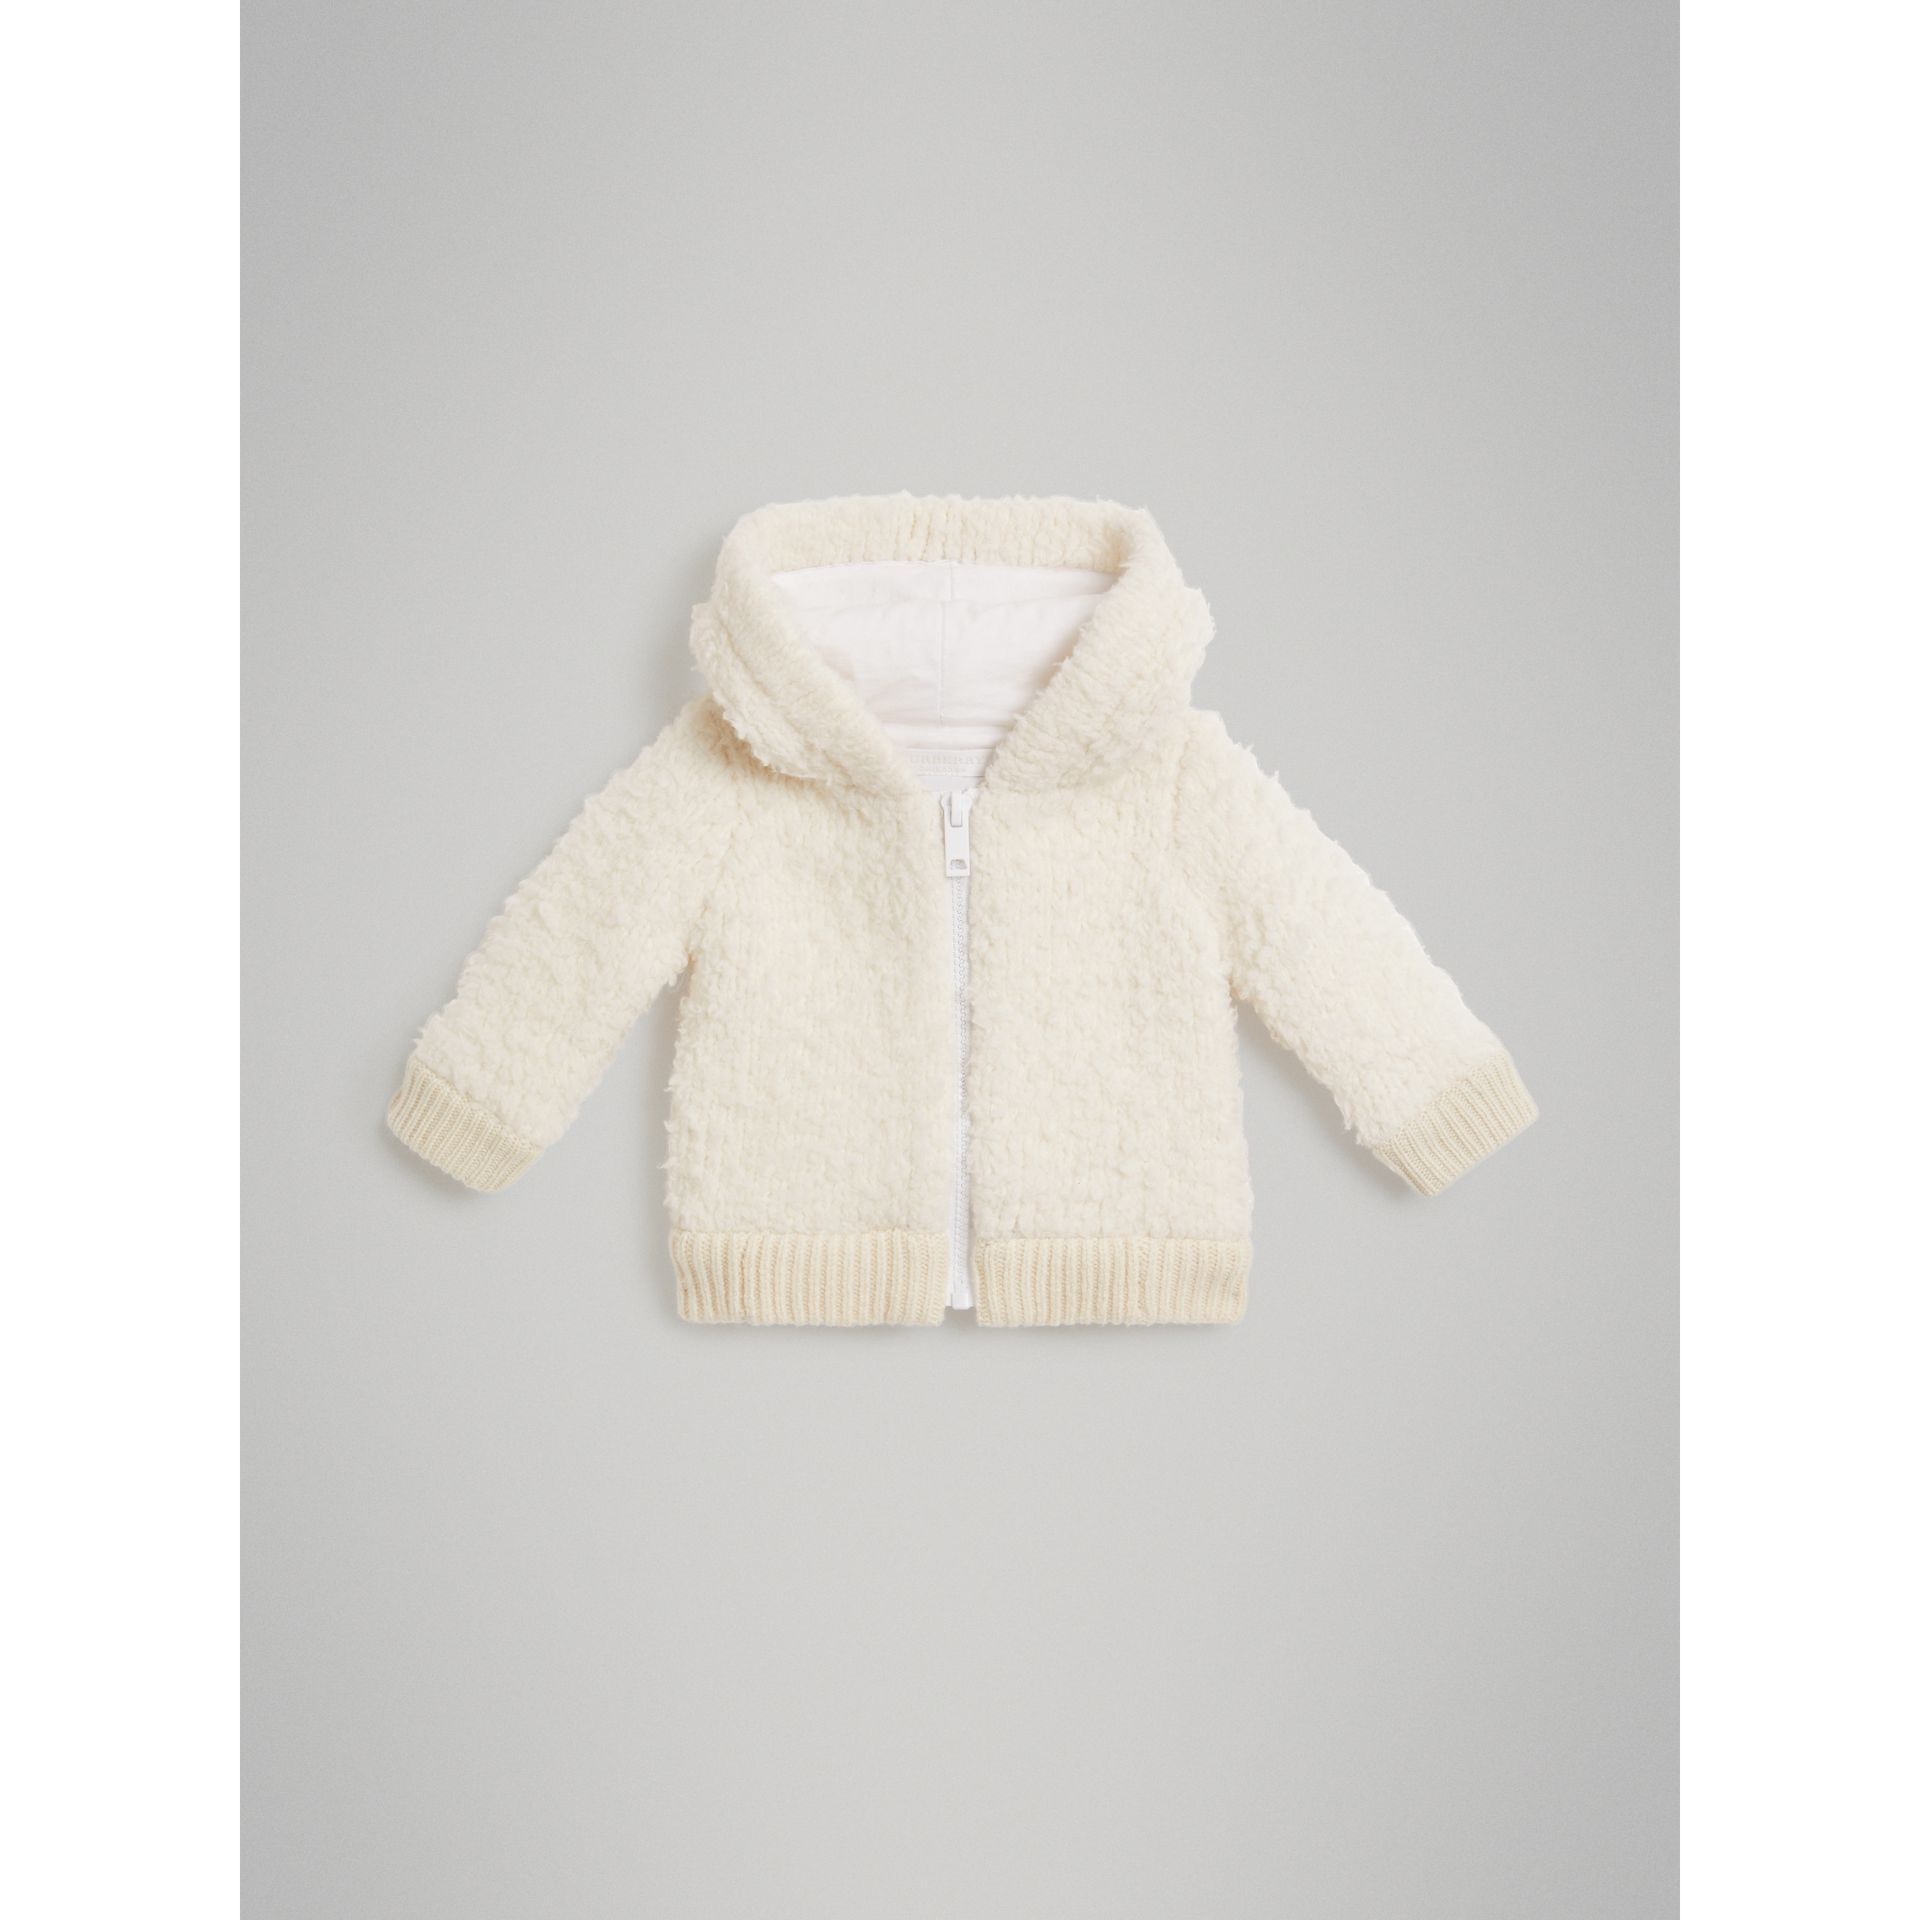 Wool Blend Hooded Top in Ivory - Children | Burberry United Kingdom - gallery image 0